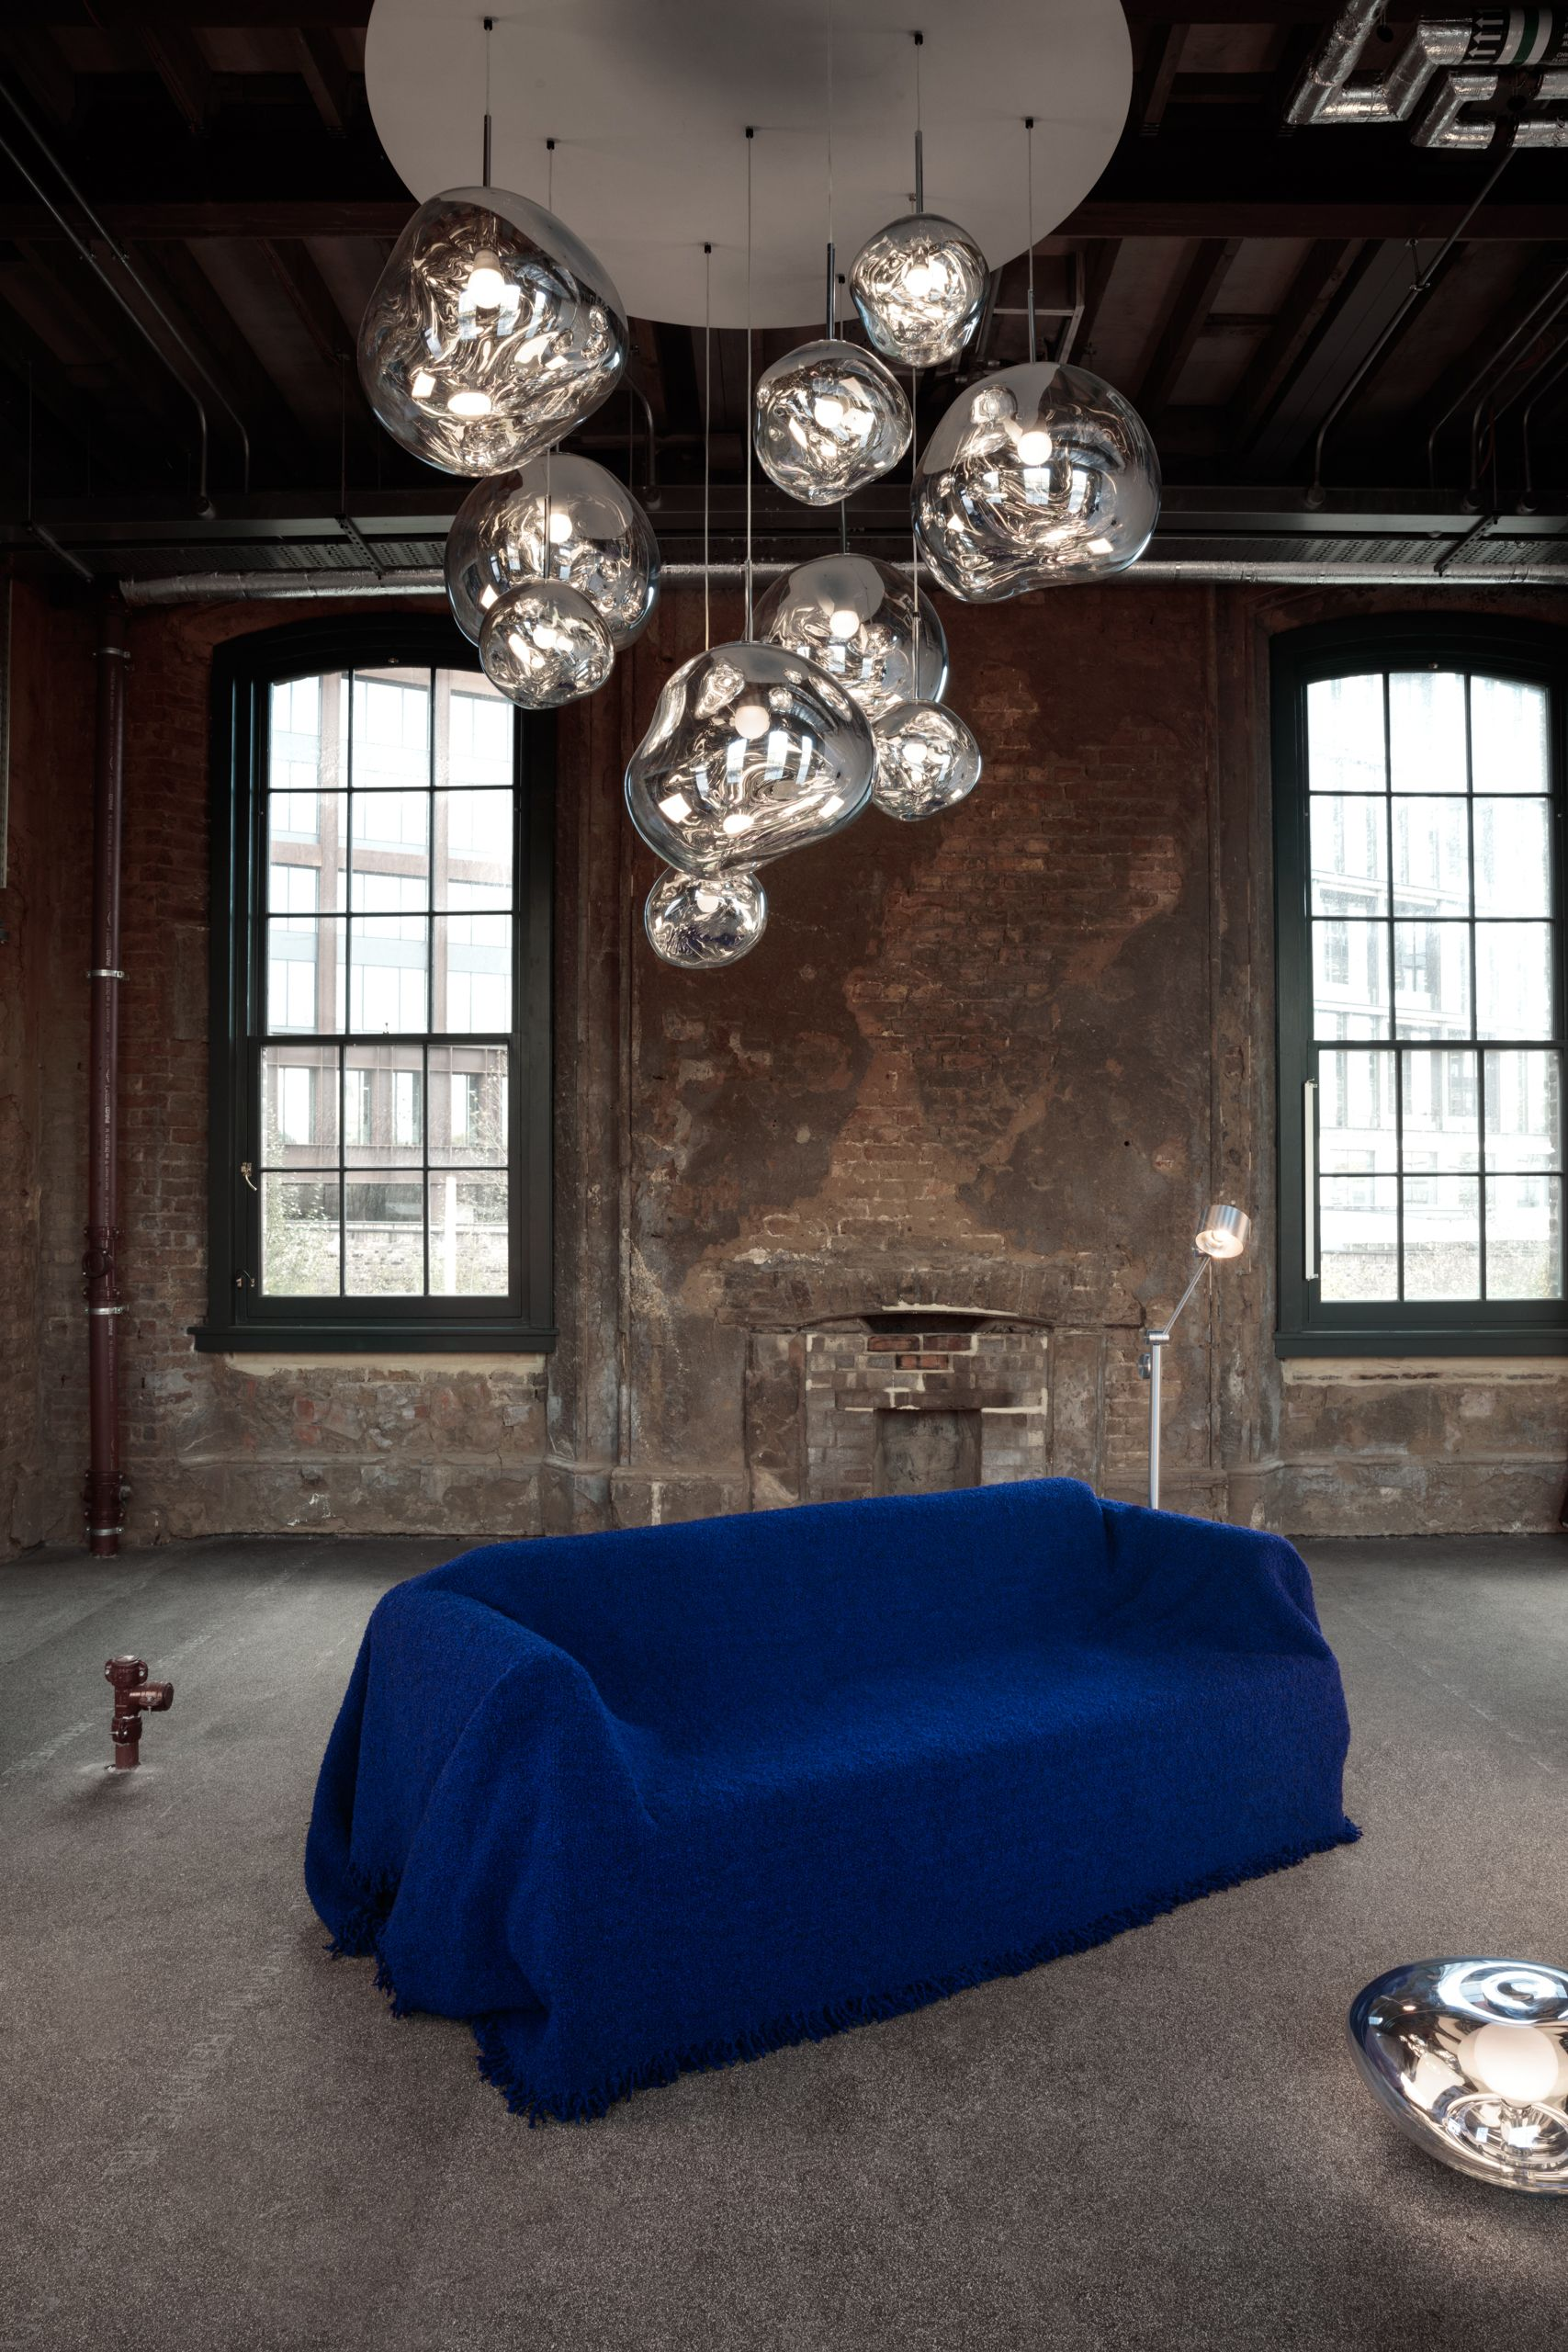 Ikea Tom Dixon S Hackable Delaktig Sofa Debuts In Europe Modular Bed Furniture Tom Dixon